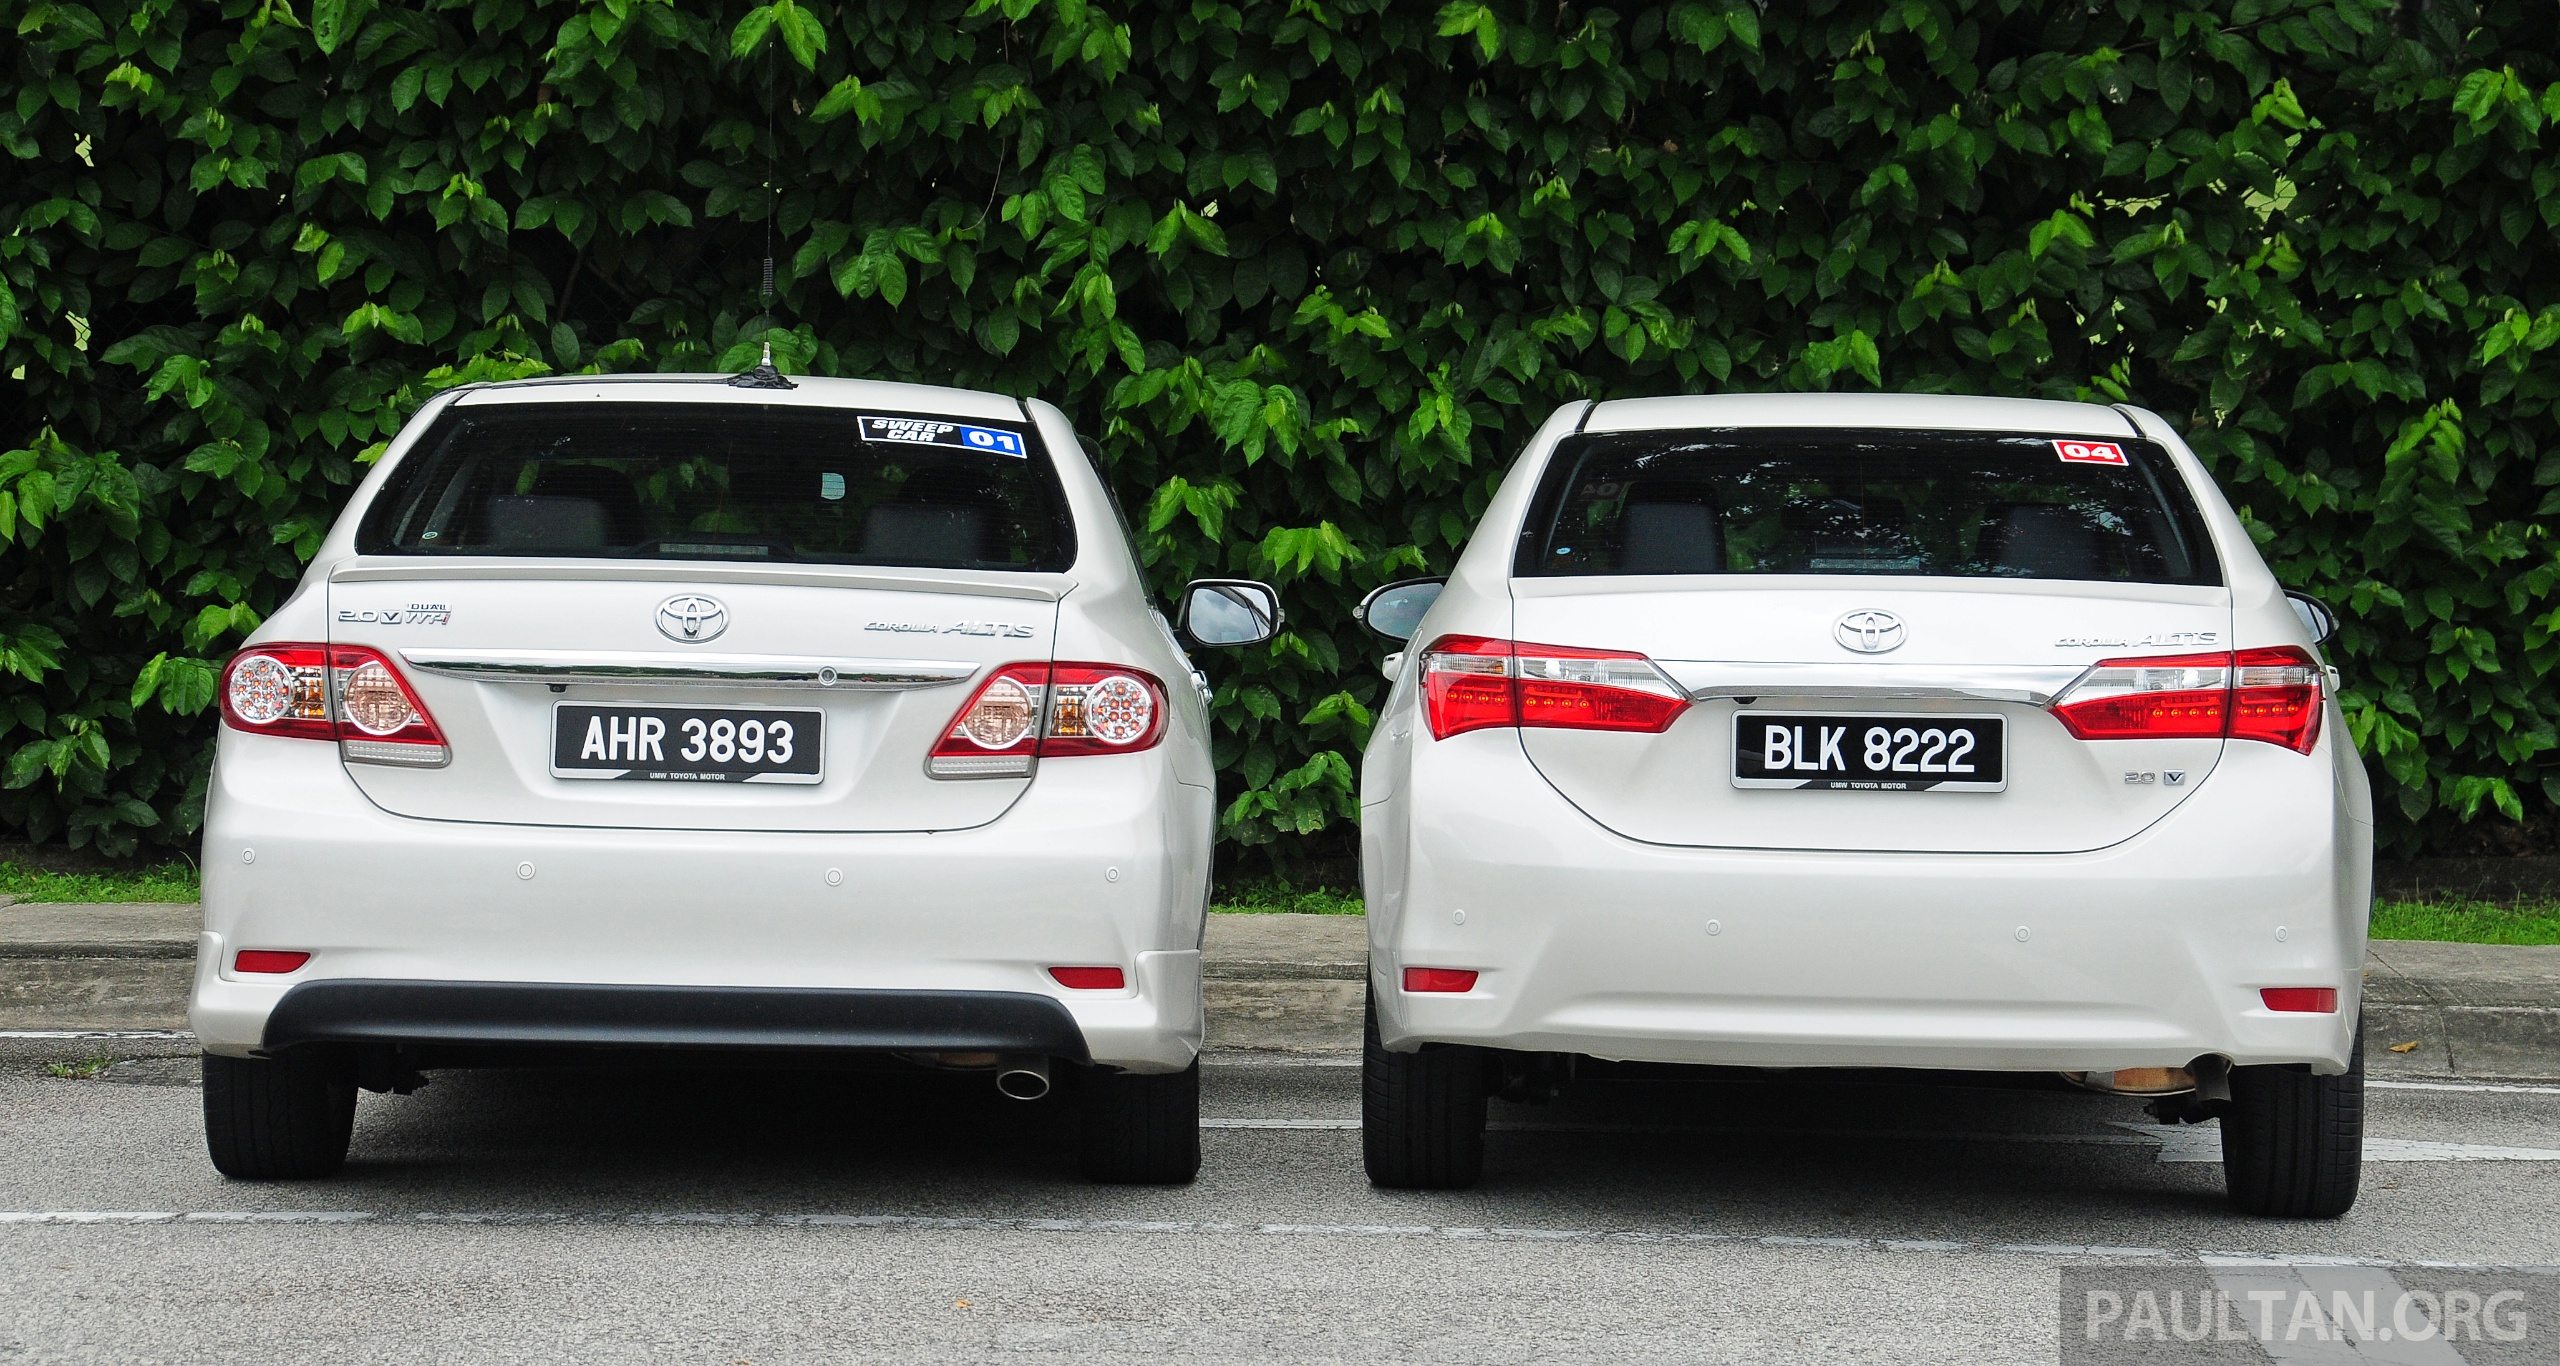 GALLERY: Old and new Toyota Corolla Altis compared Image 222549